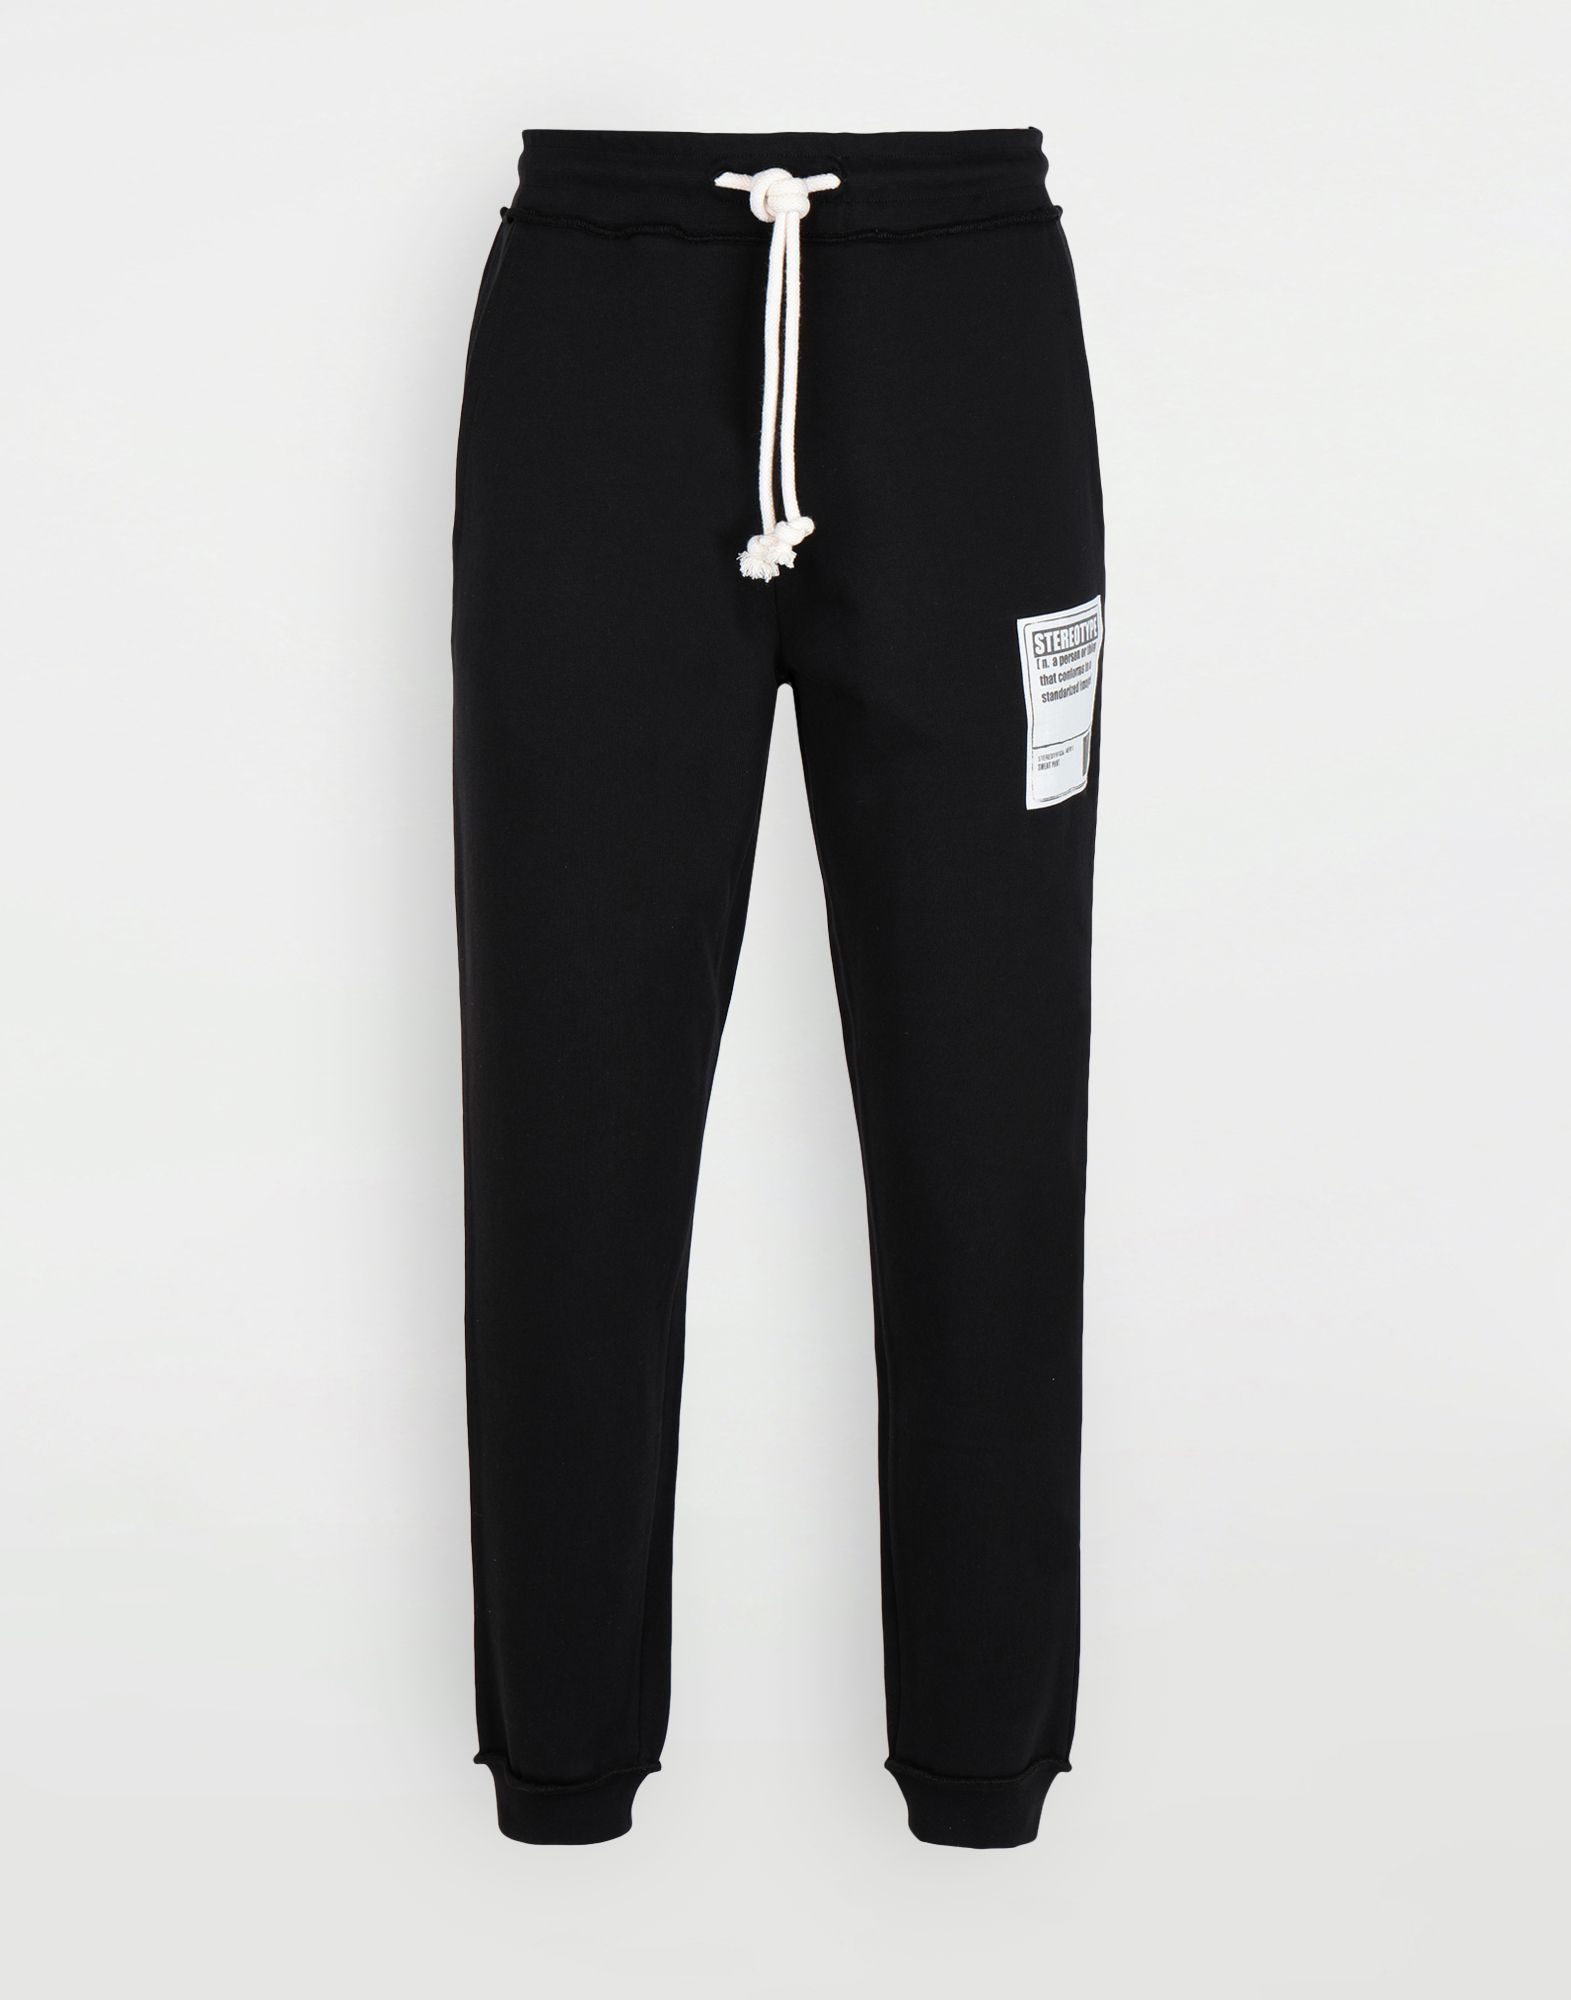 MAISON MARGIELA Cotton drawstring 'Stereotype' sweatpants Casual pants Man f